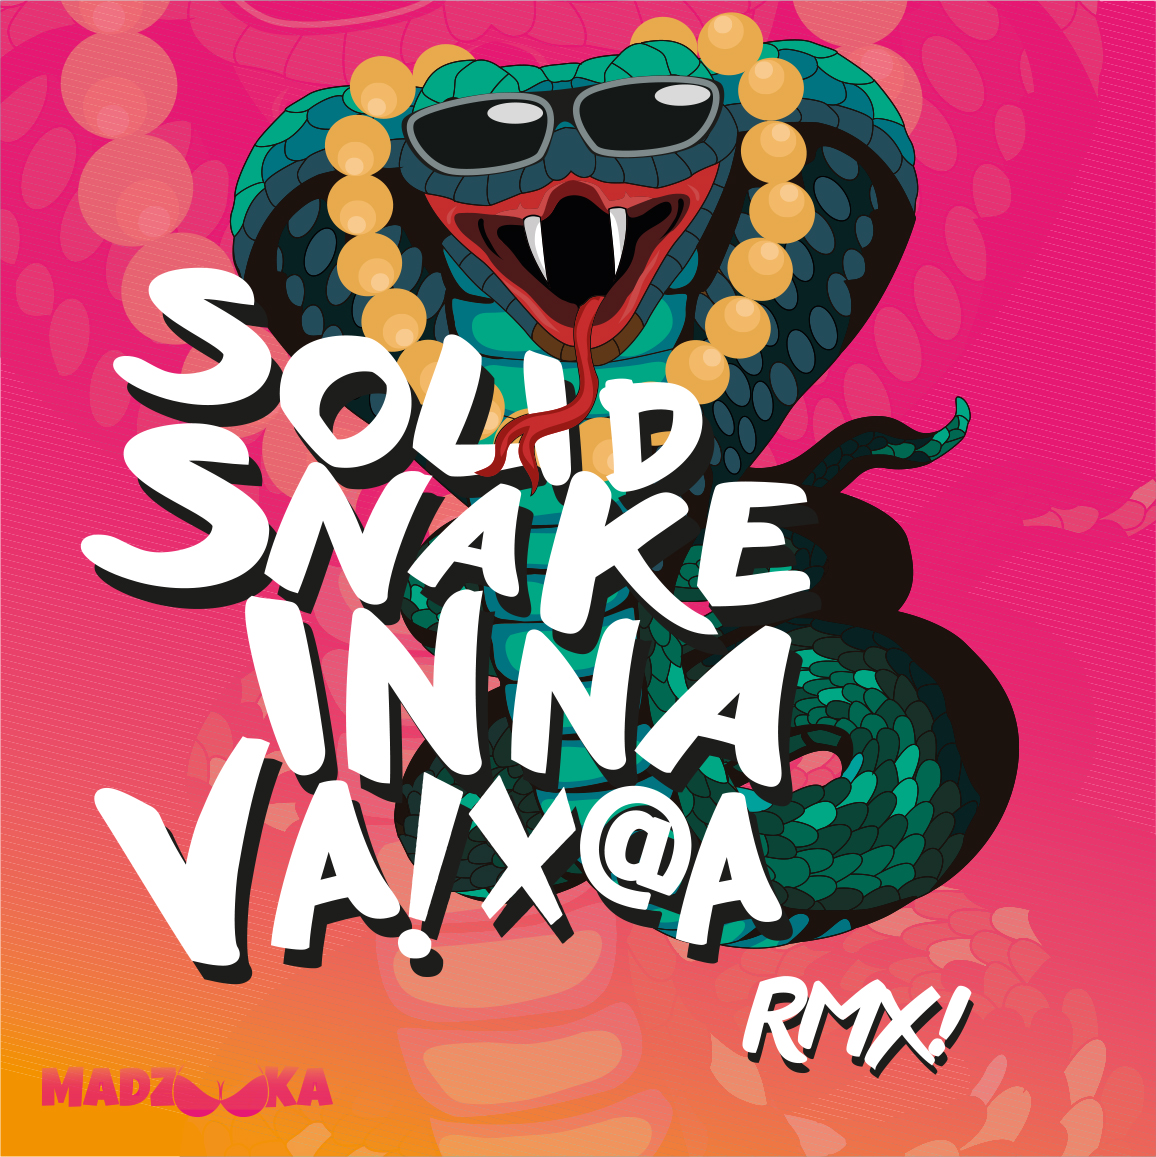 SOLID SNAKE IN A VAGINA RMX by MADZOOKA   Free Download on